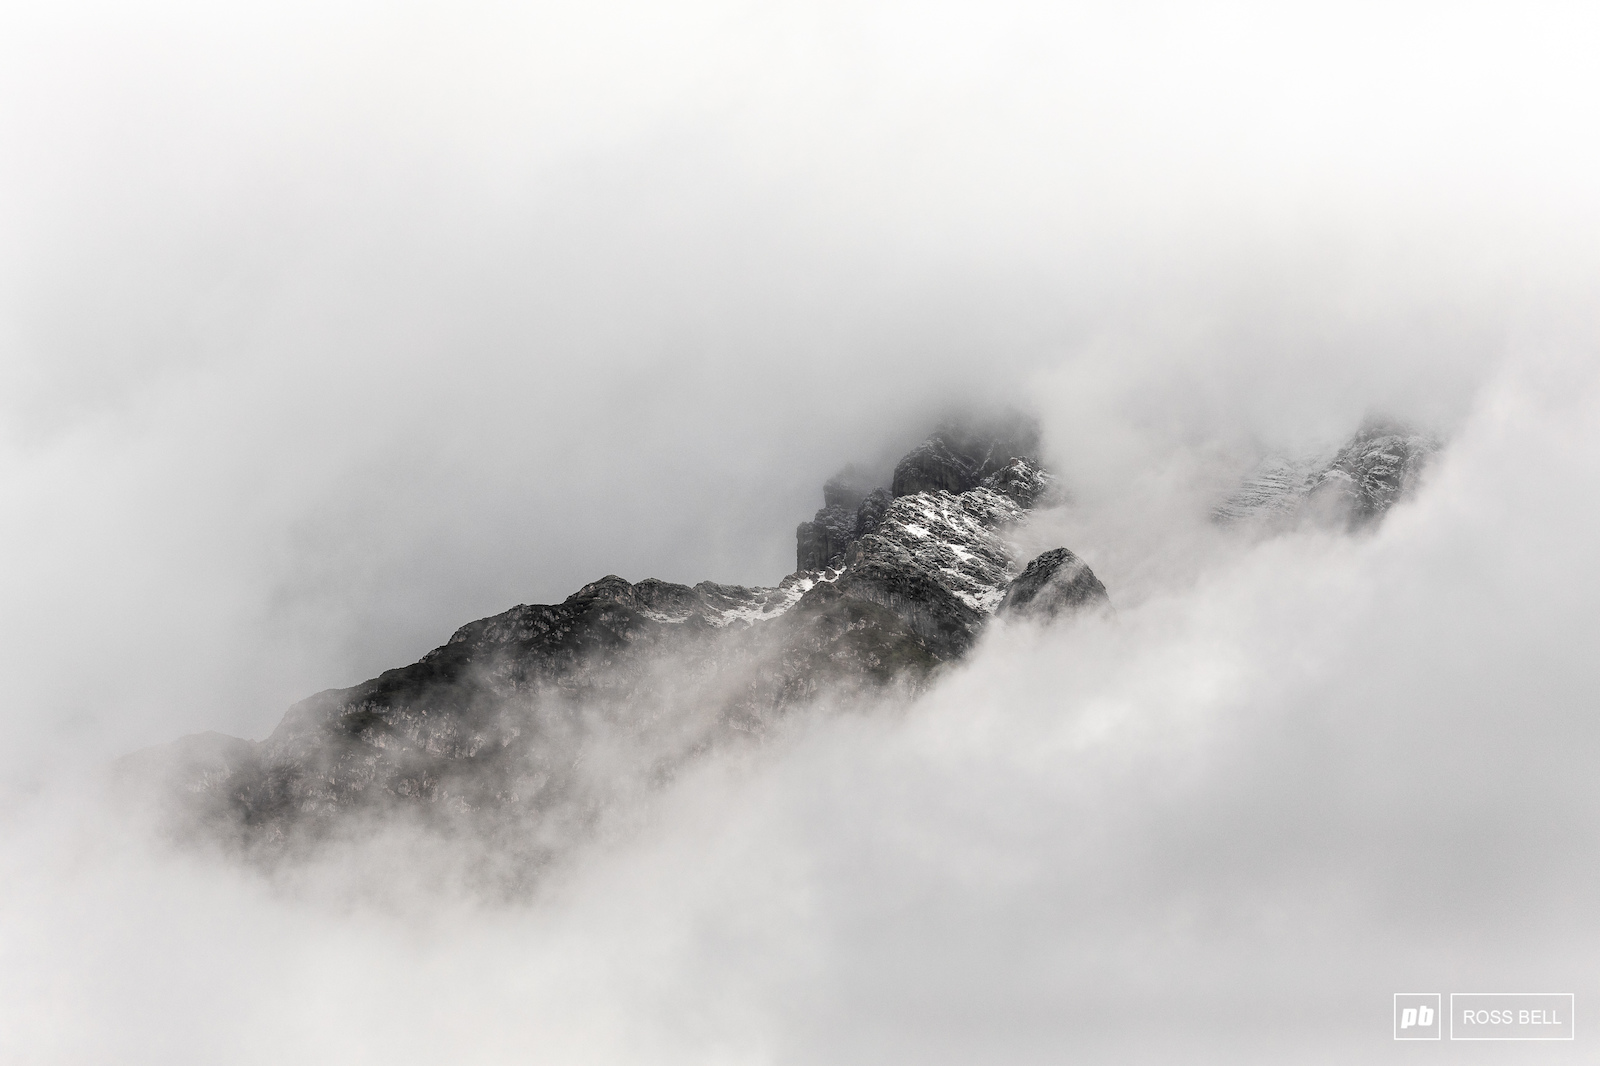 The mountains were hiding away in a blanket of cloud this morning.